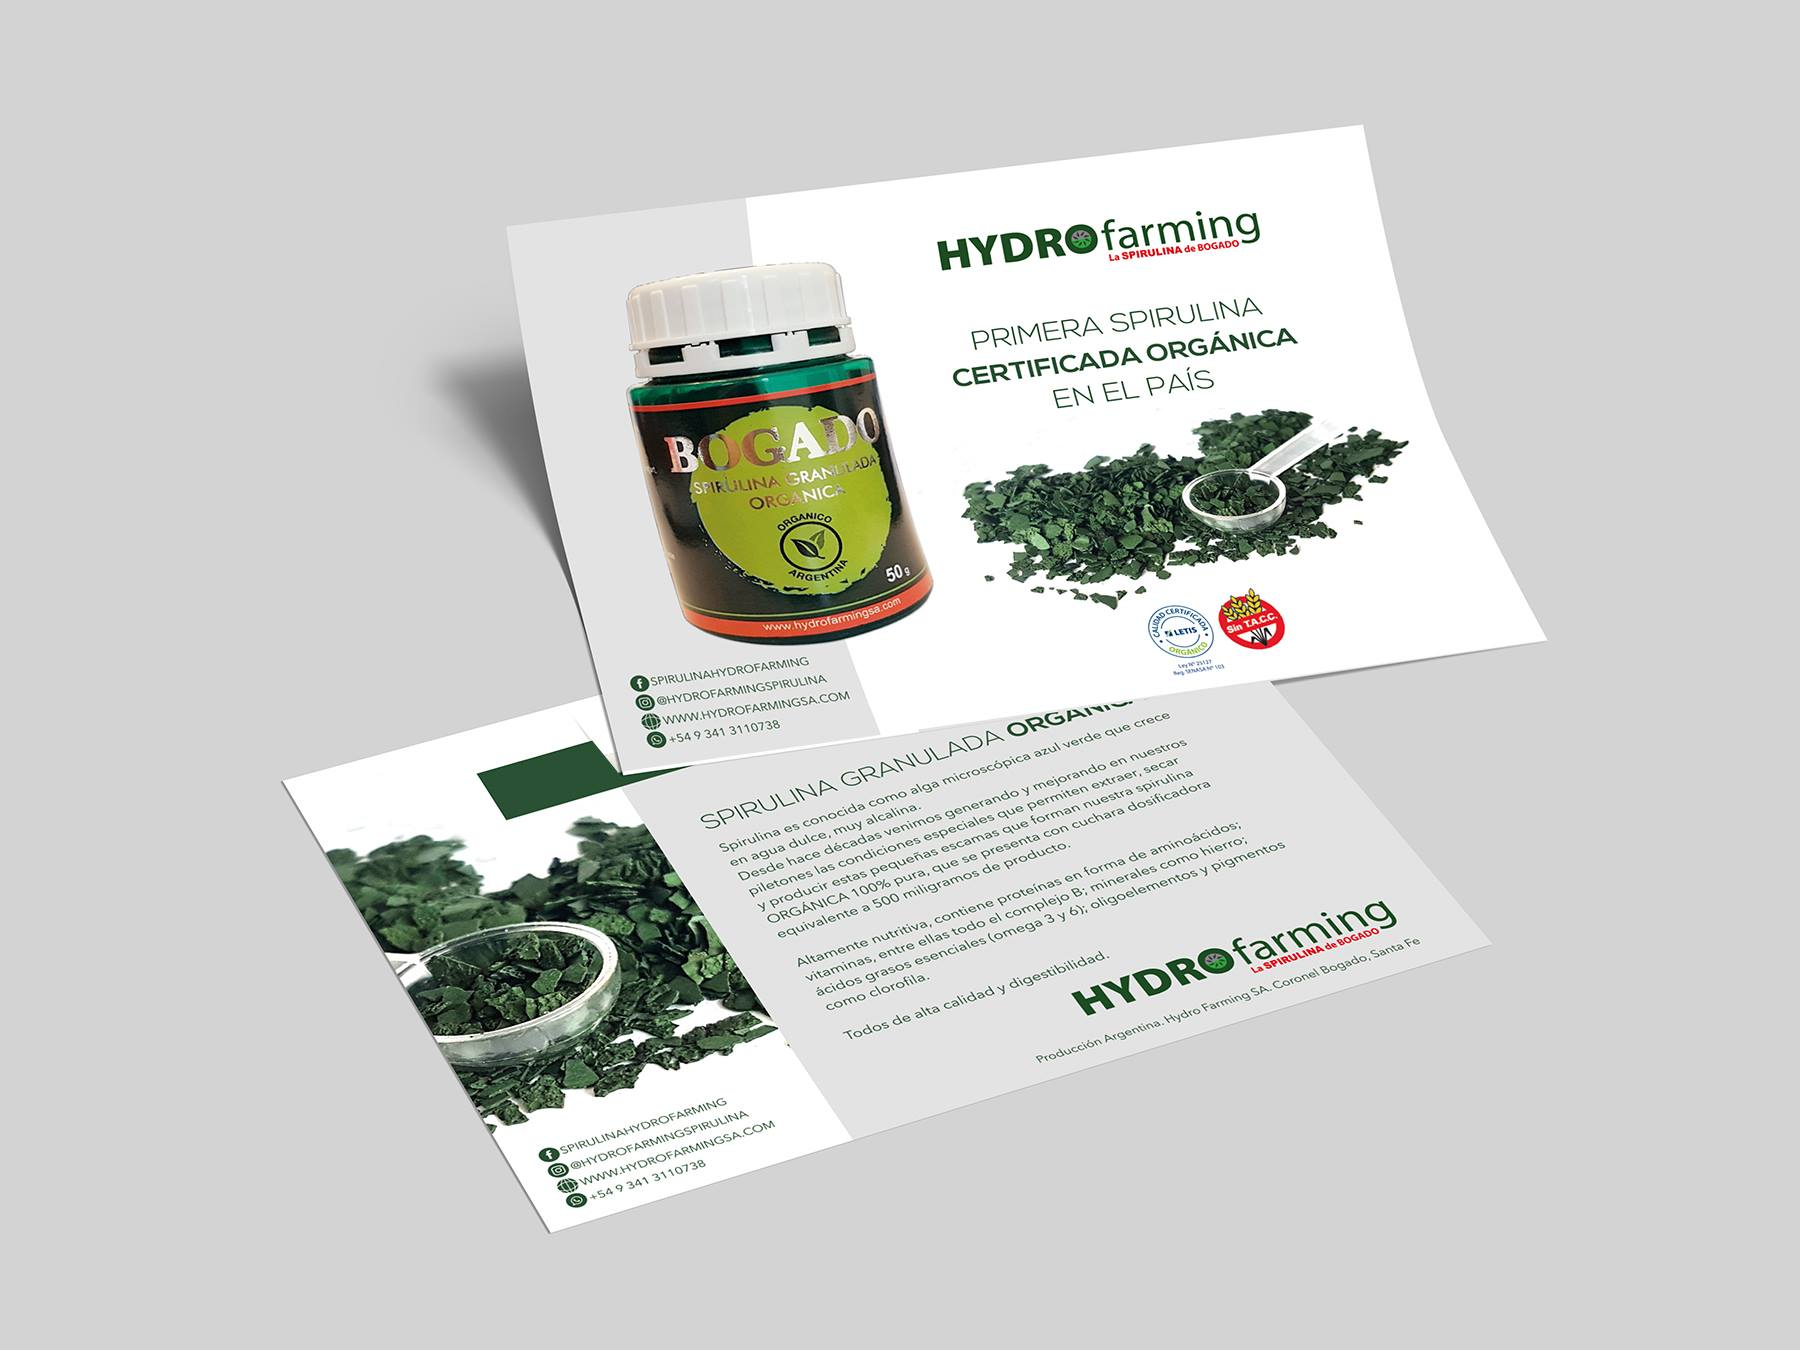 Folleto Hydro Farming. Spirulina